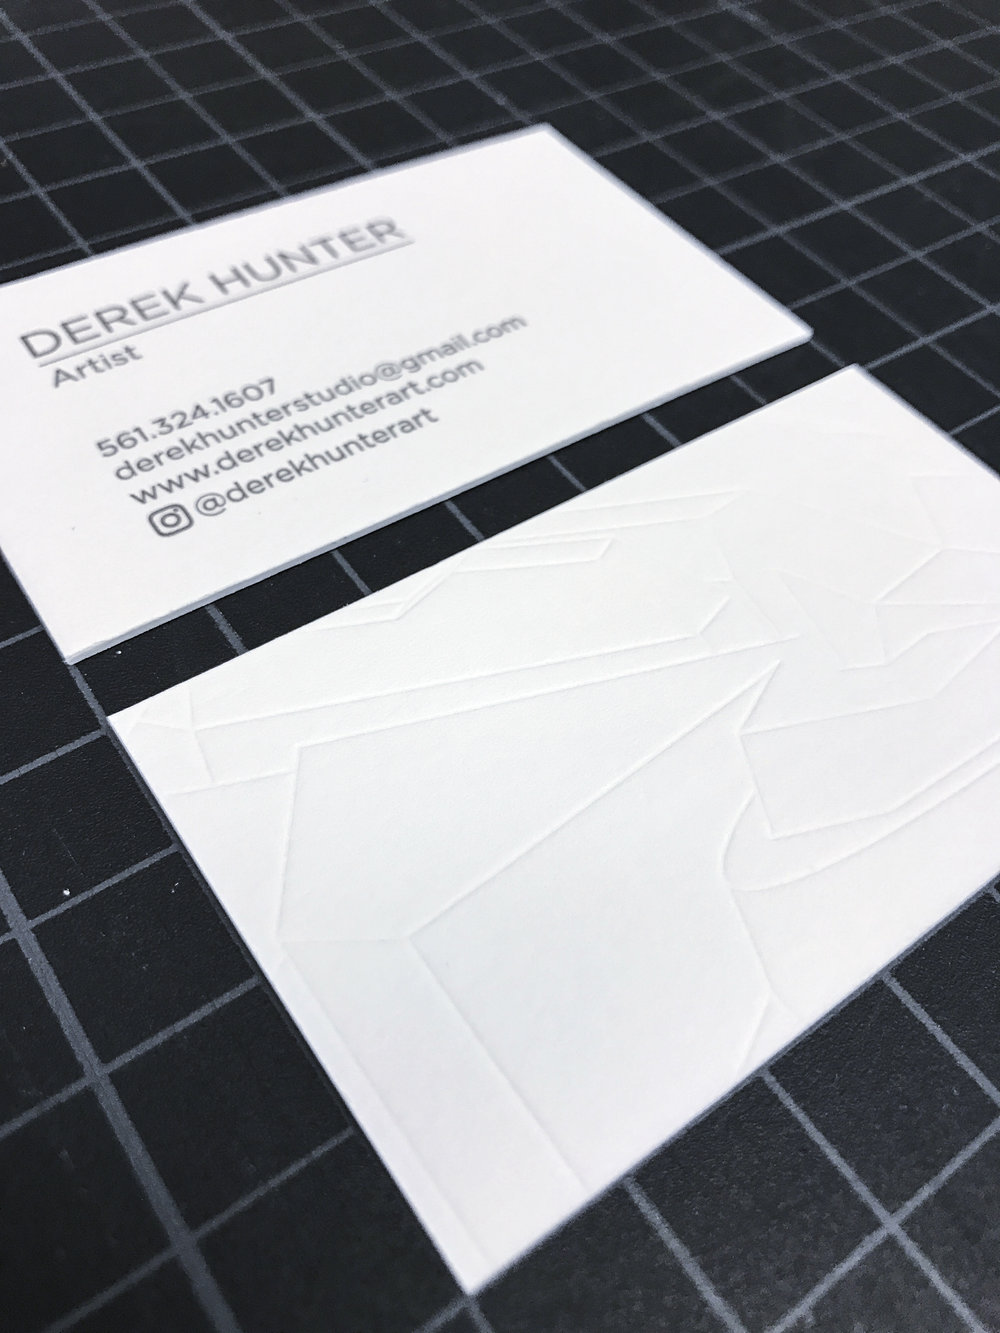 Business cards 01.JPG